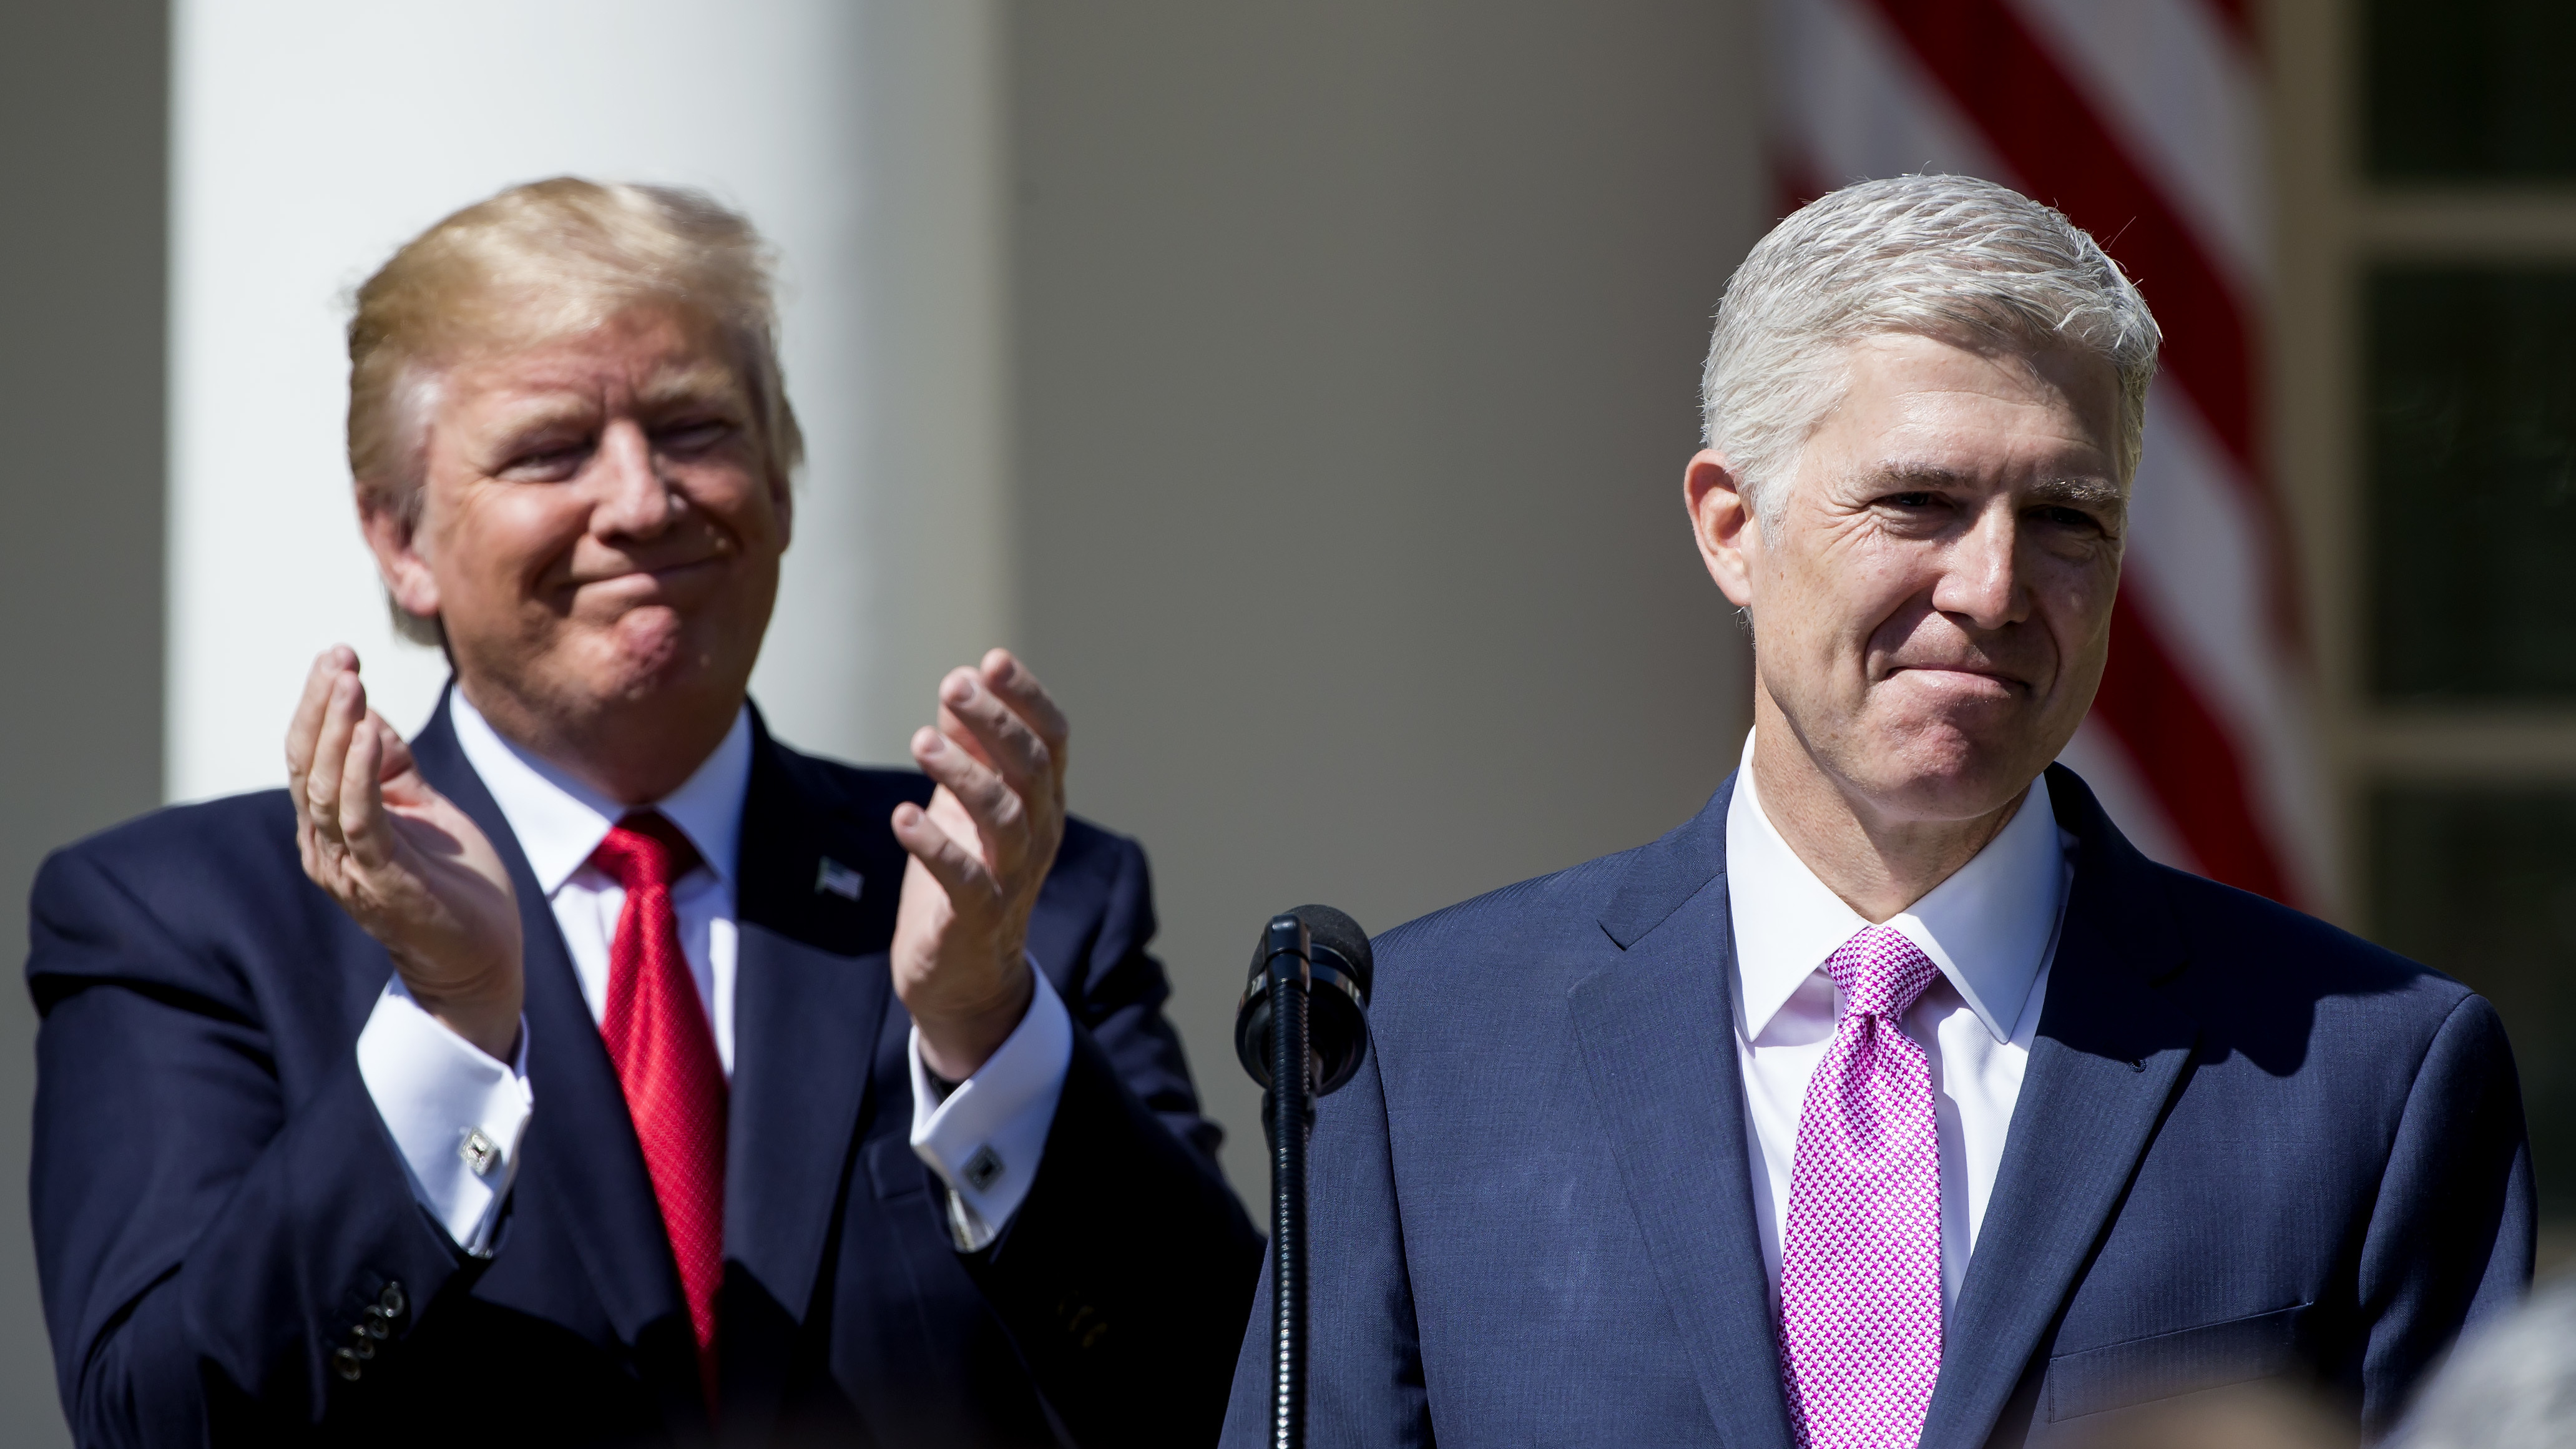 President Trump introduces Supreme Court Justice Neil Gorsuch in the Rose Garden after Gorsuch